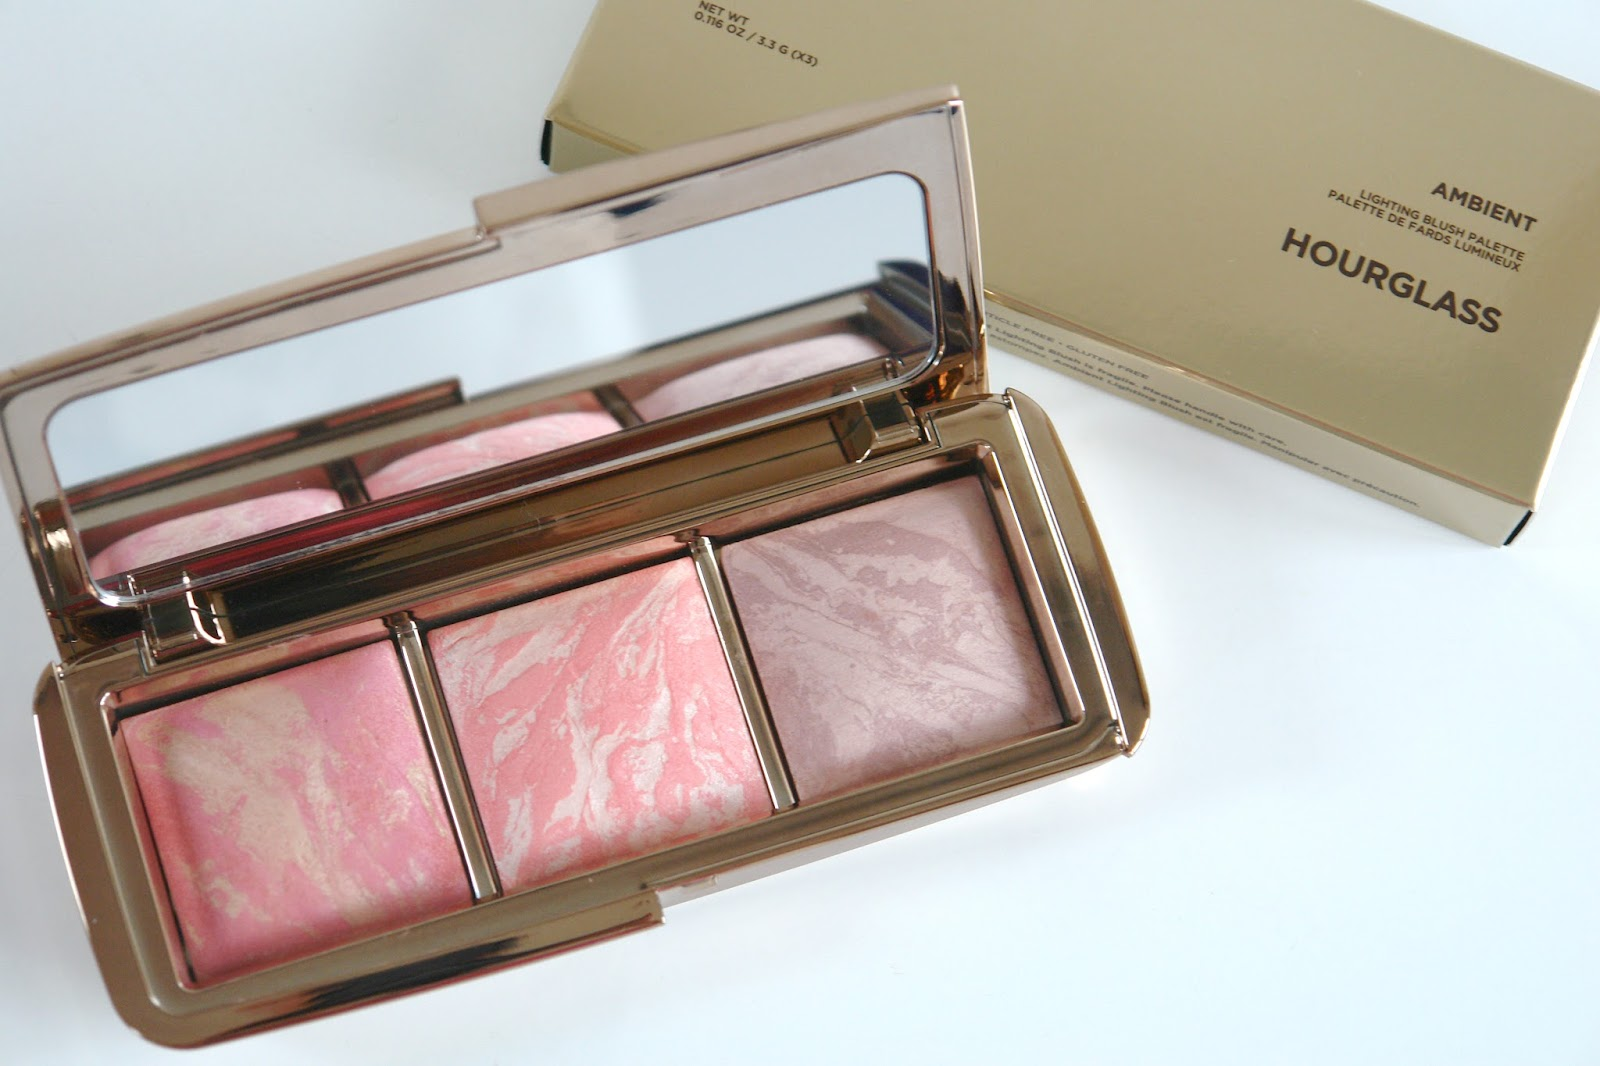 Hourglass Ambient Lighting Blush Palette review + swatches, beauty, blusher, hourglass, make up, palette, review, swatches, Luminous Flush, Incandescent Electra, Mood Exposure, blush palette, hourglass cosmetics,